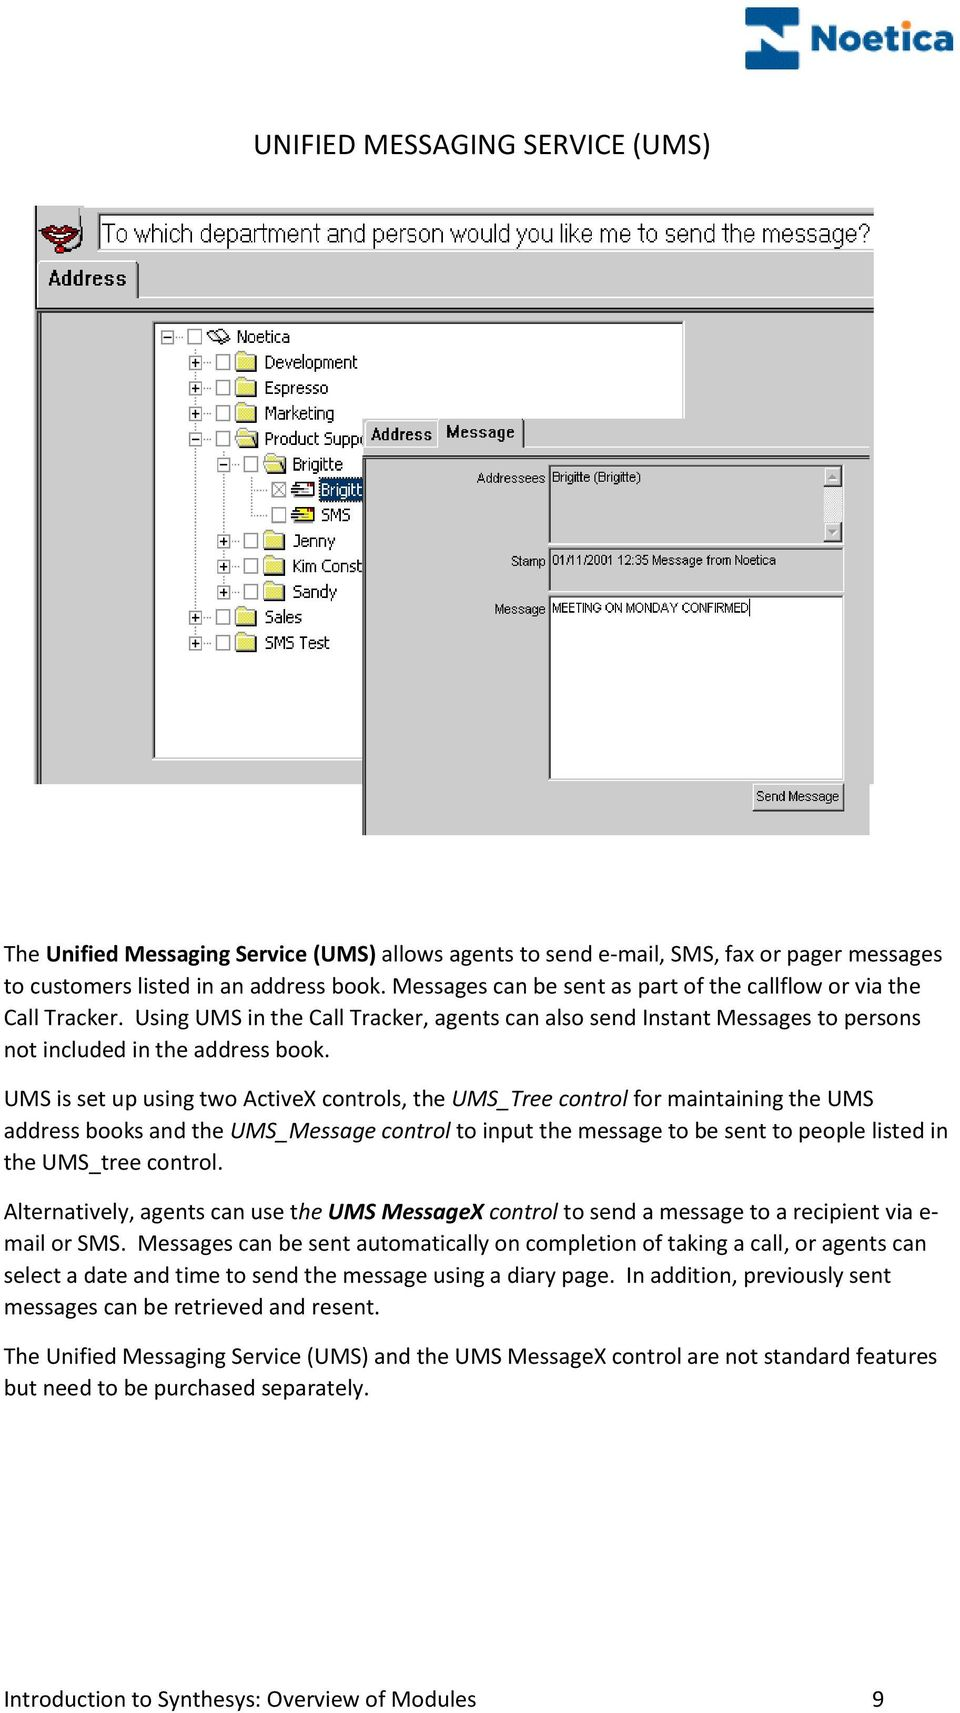 UMS is set up using two ActiveX controls, the UMS_Tree control for maintaining the UMS address books and the UMS_Message control to input the message to be sent to people listed in the UMS_tree